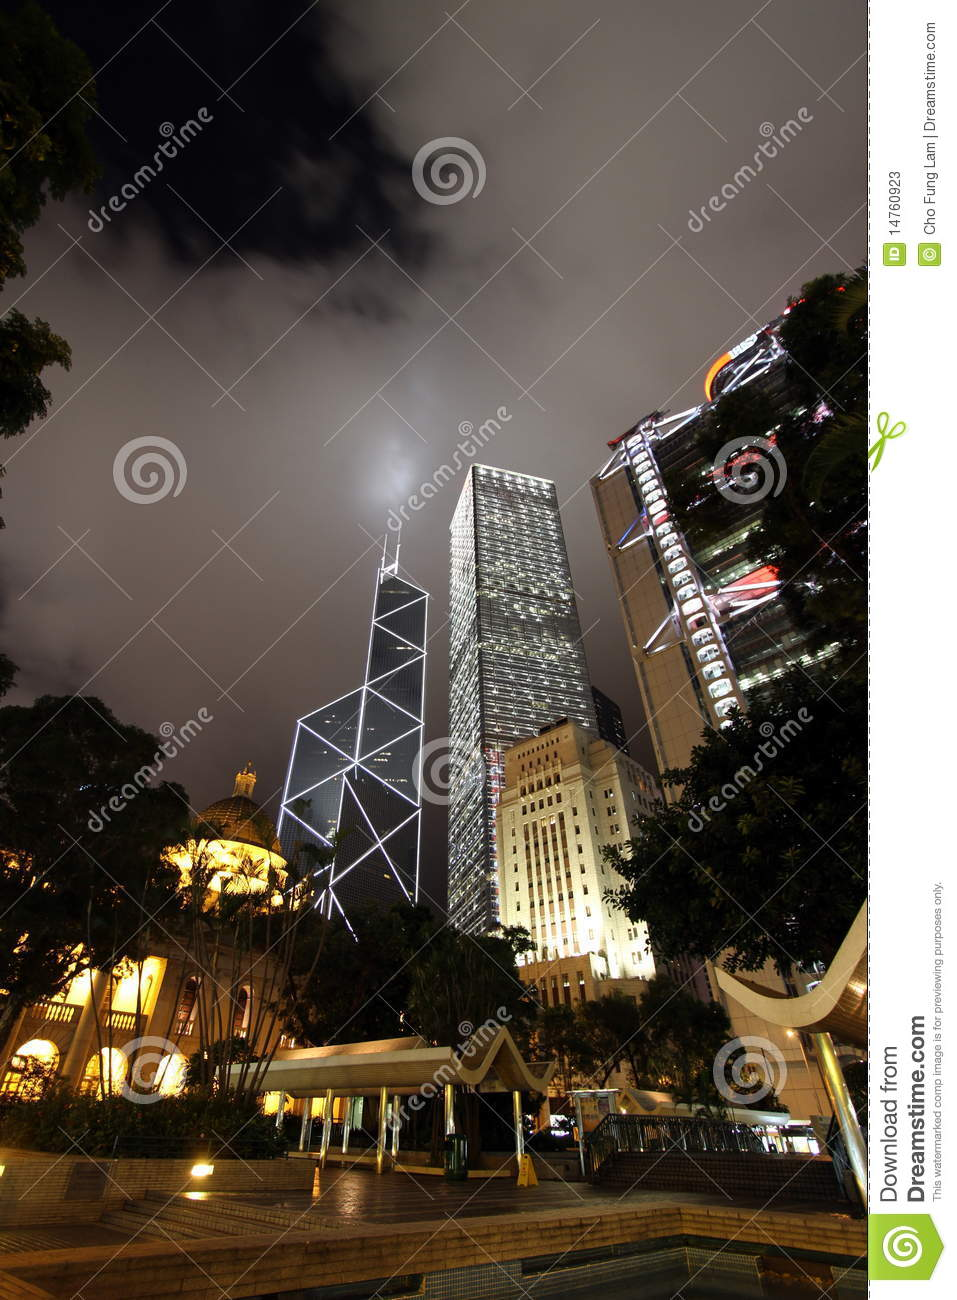 Status Square, Central, Hong Kong